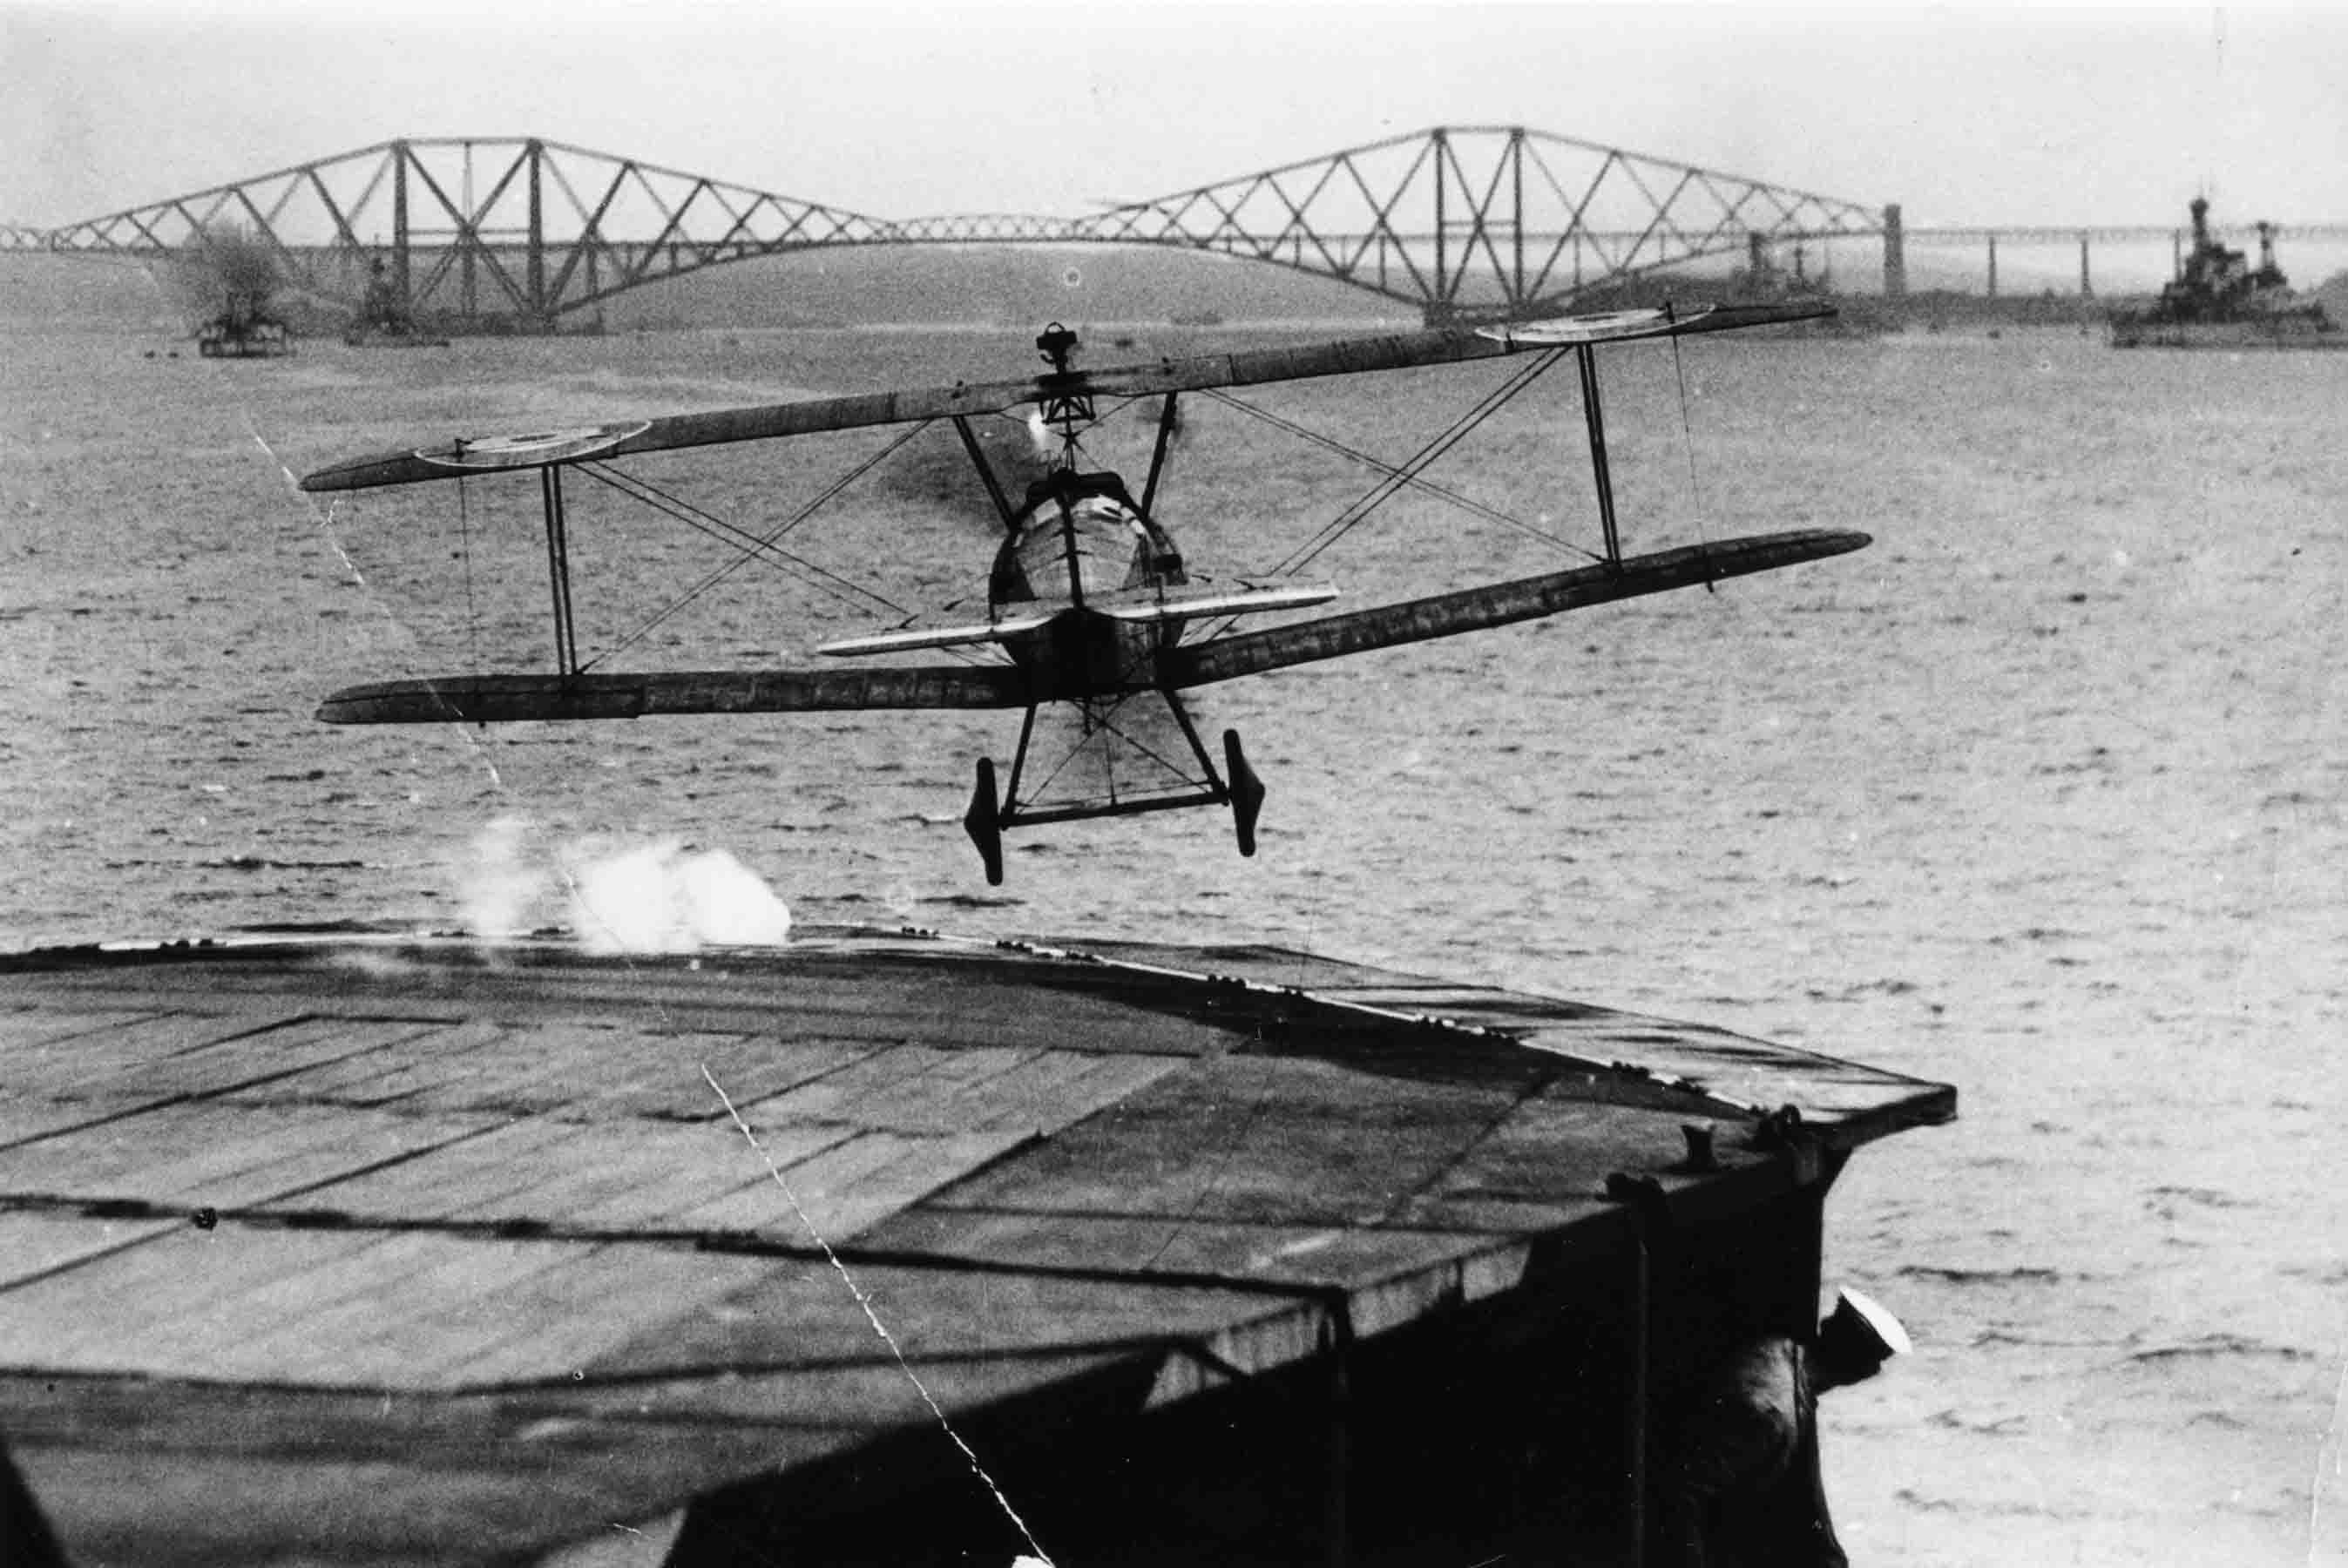 X003-2602/15784: Sopwith 2F.1 Camel during taking off from an early carrier, probably HMS Pegasus, in the Firth of Forth, probably during 1918.